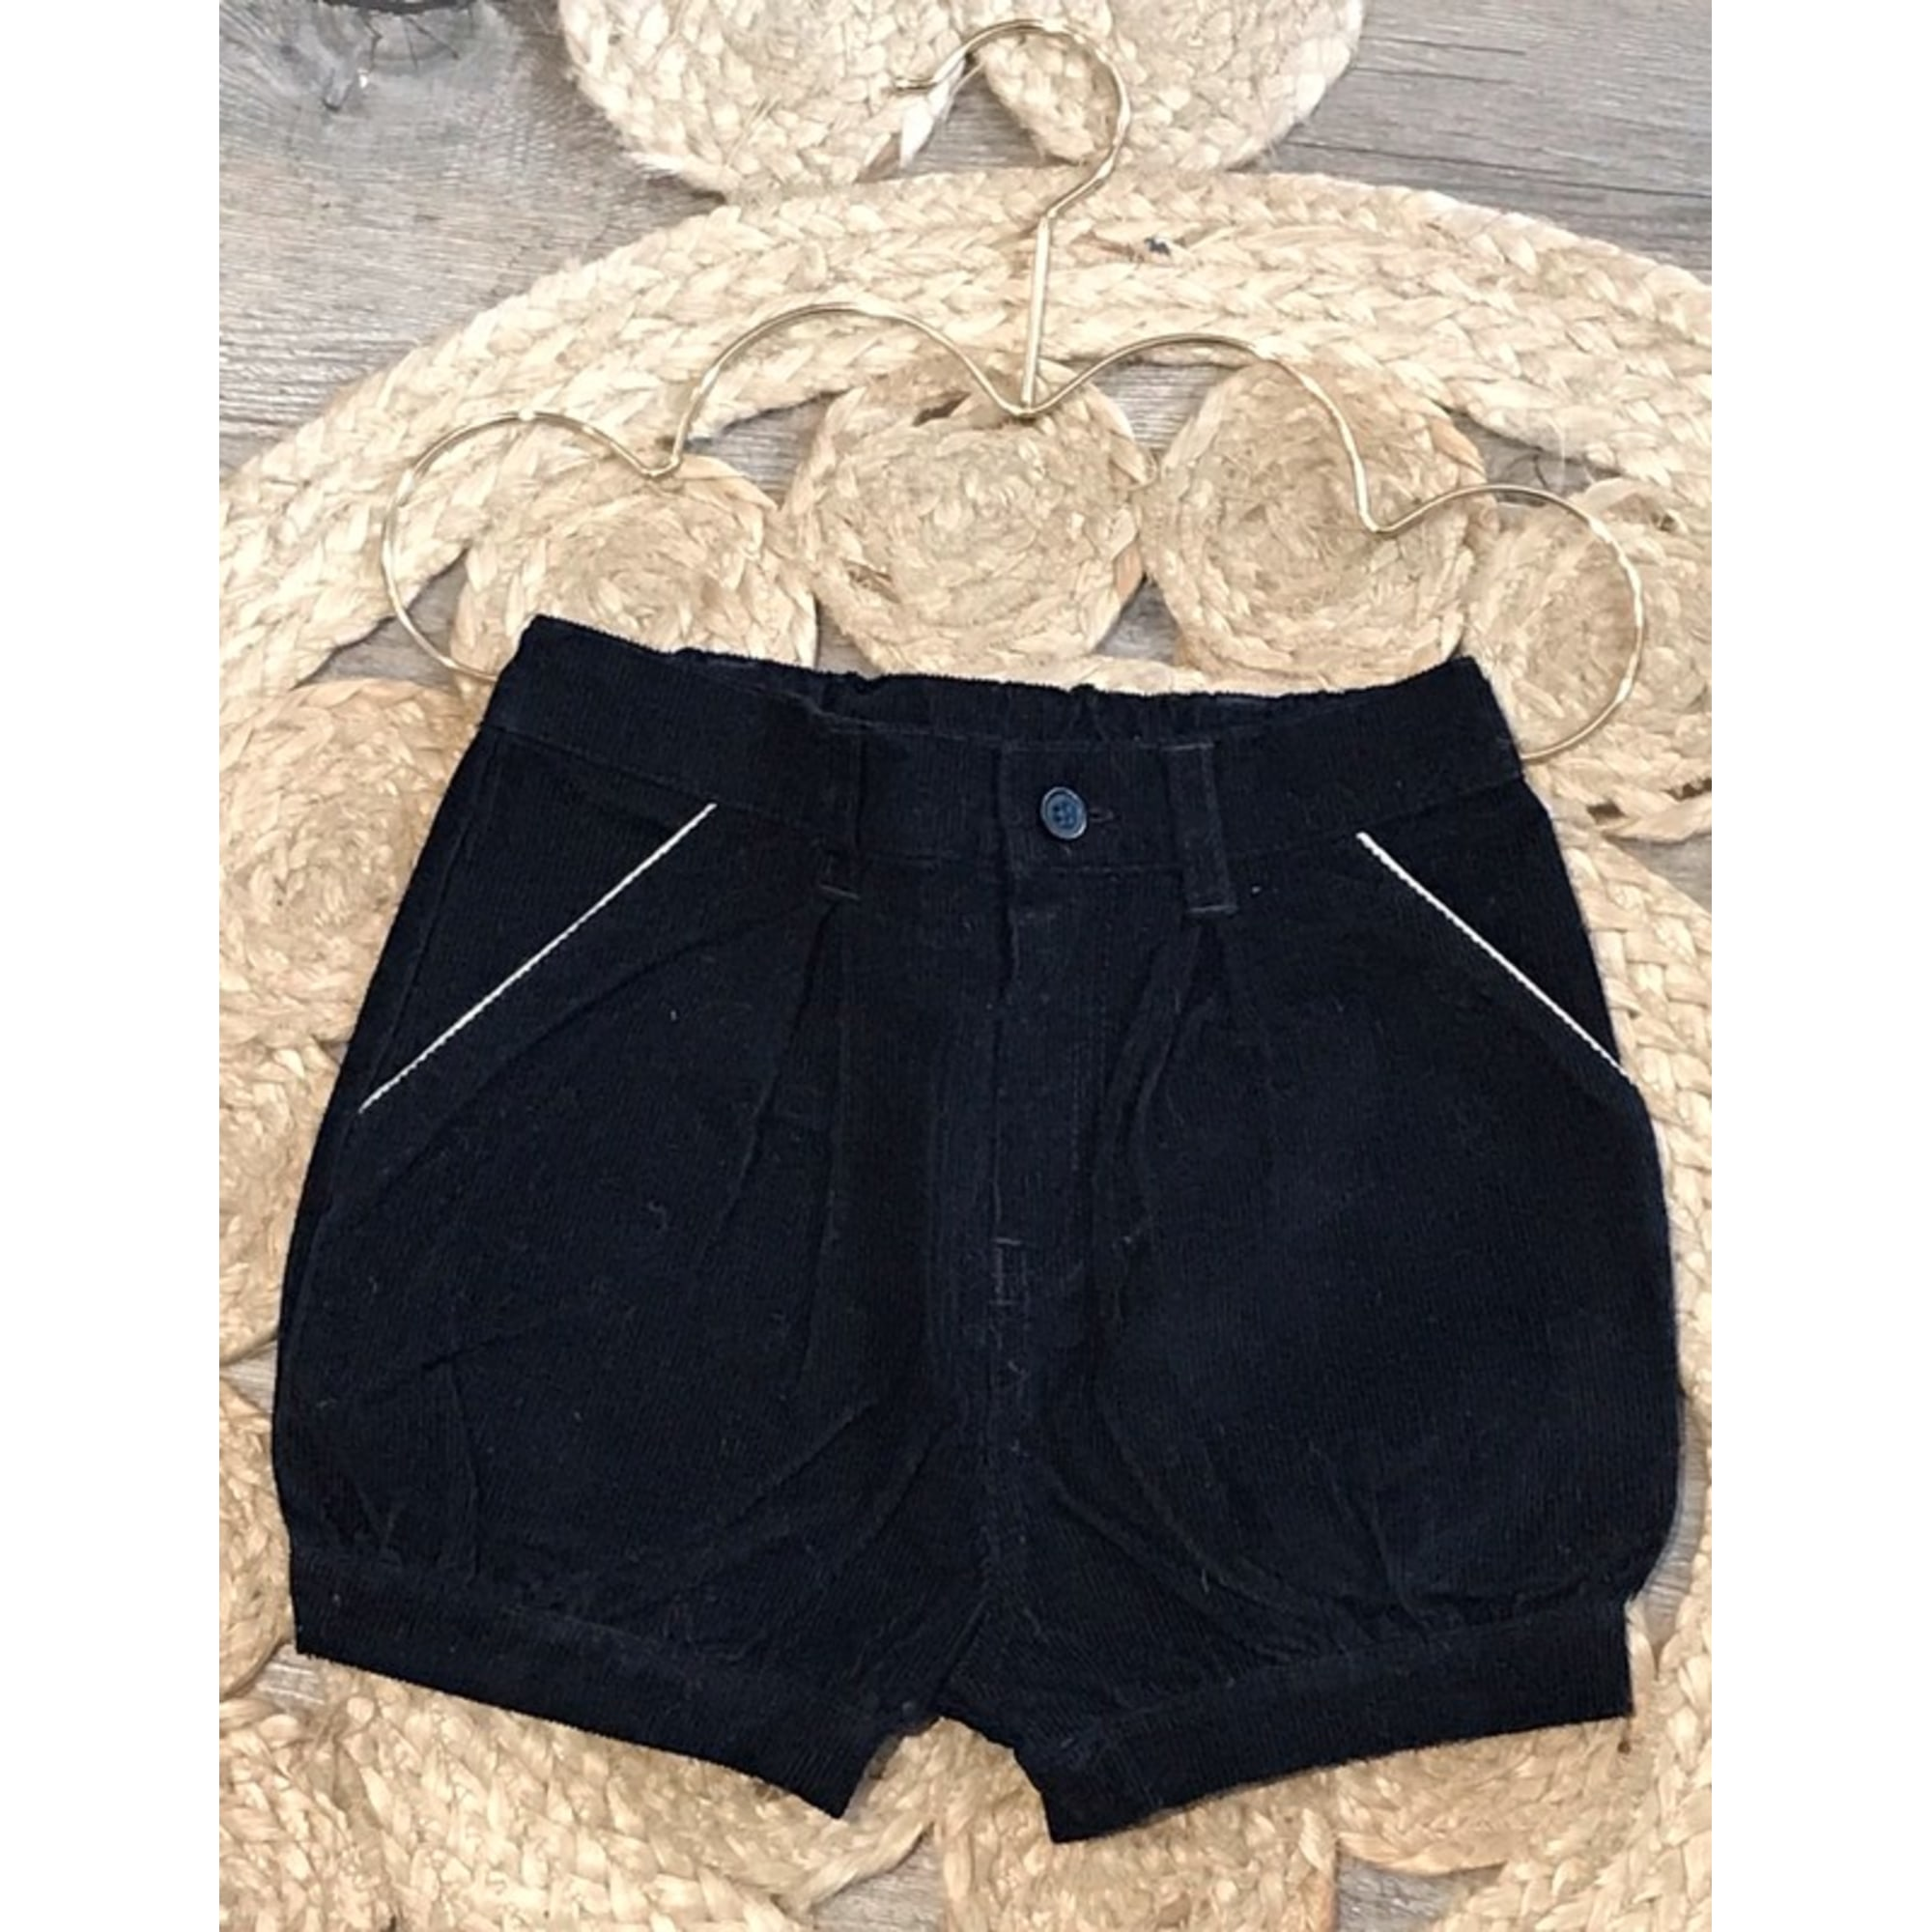 Shorts MARC JACOBS Blue, navy, turquoise